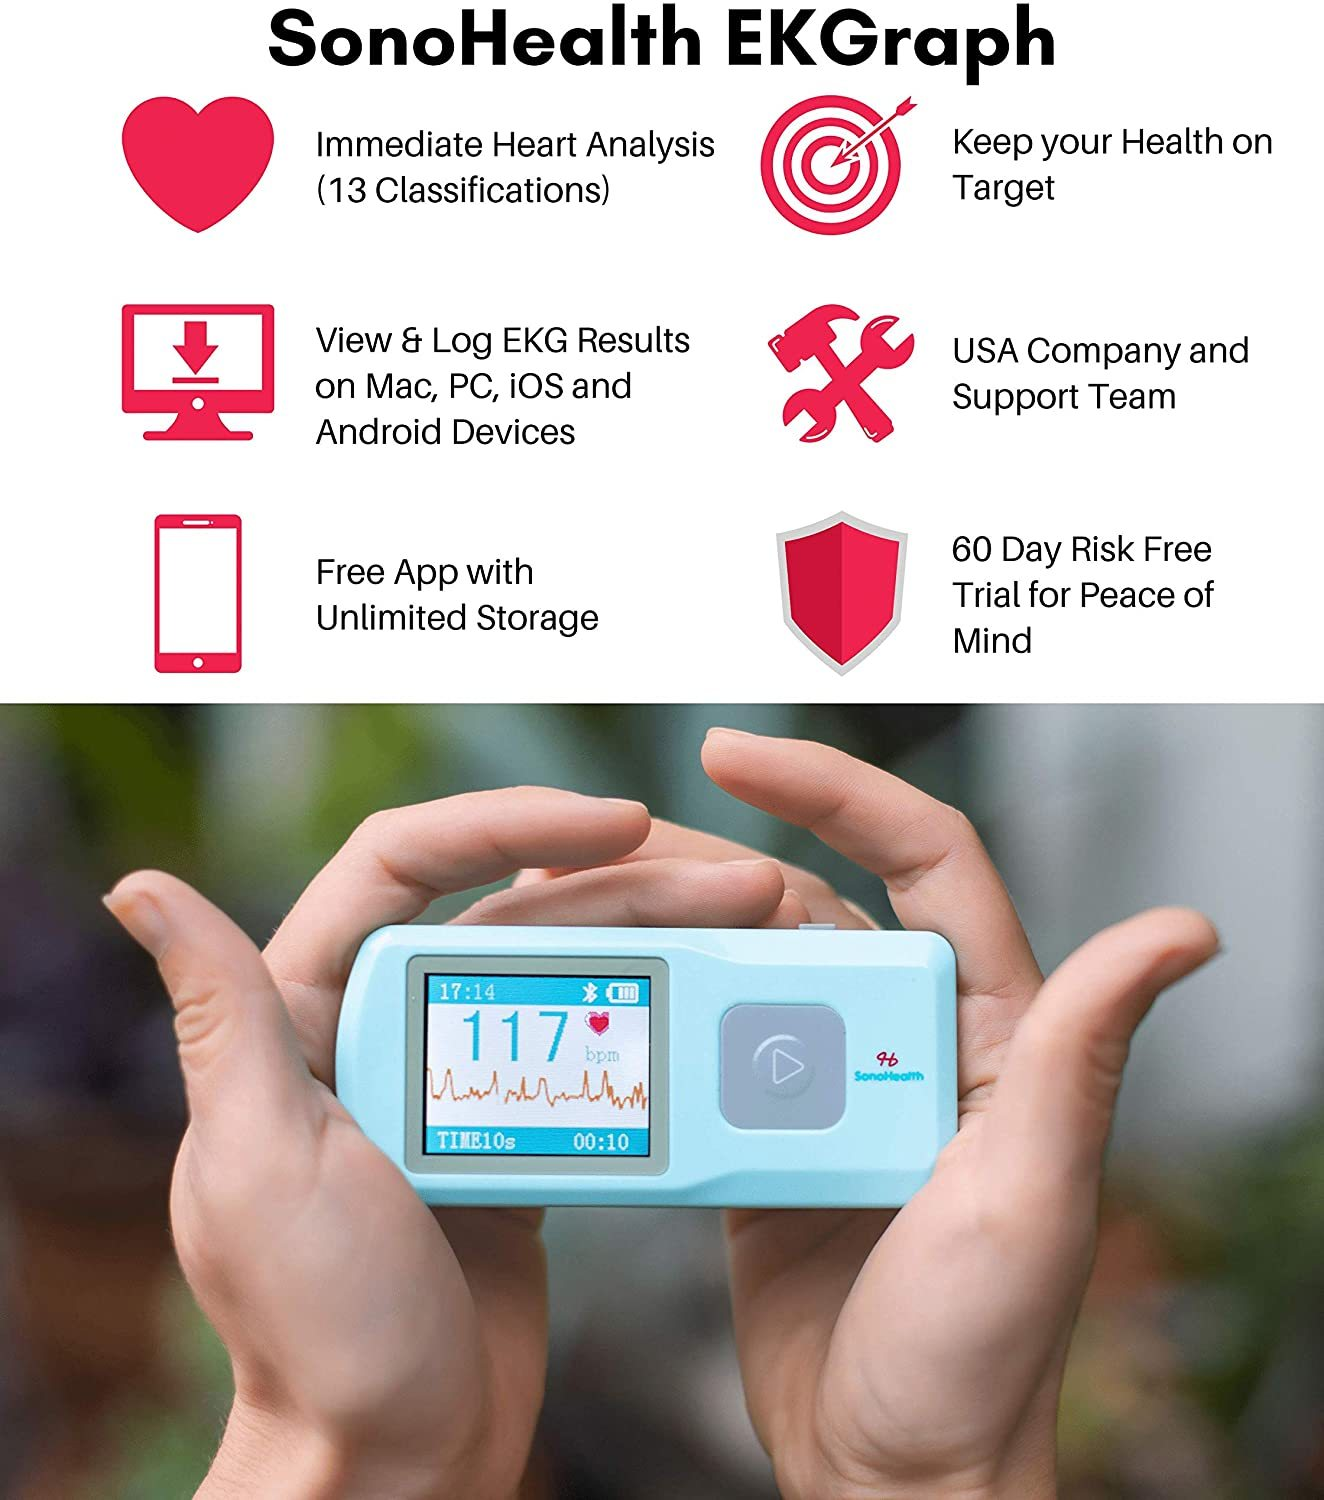 Portable EKG Heart Rate Monitor | Wireless Handheld Home ECG Cardio & Electrocardiogram Machine | Biofeedback Finger & Chest Leads View Irregular Cardiac Arrhythmia Vitals on a Mobile Phone